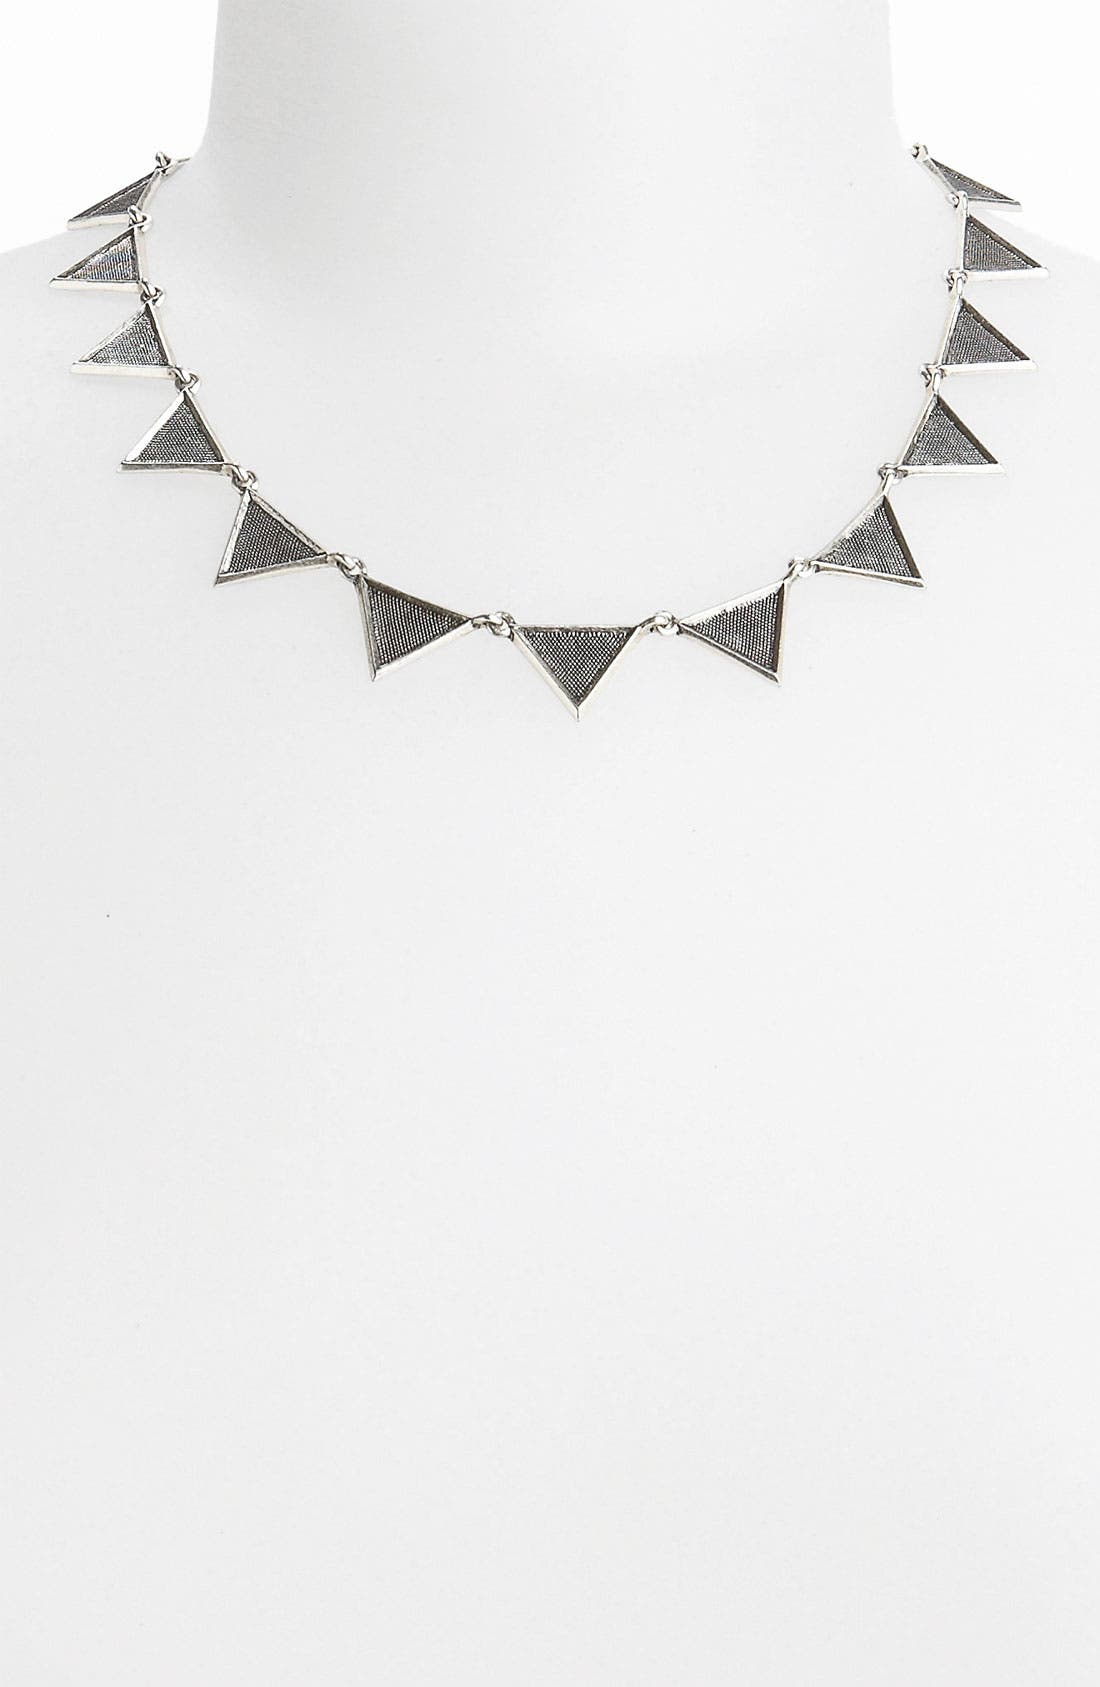 HOUSE OF HARLOW 1960 Crosshatched Triangle Collar Necklace, Main, color, 040